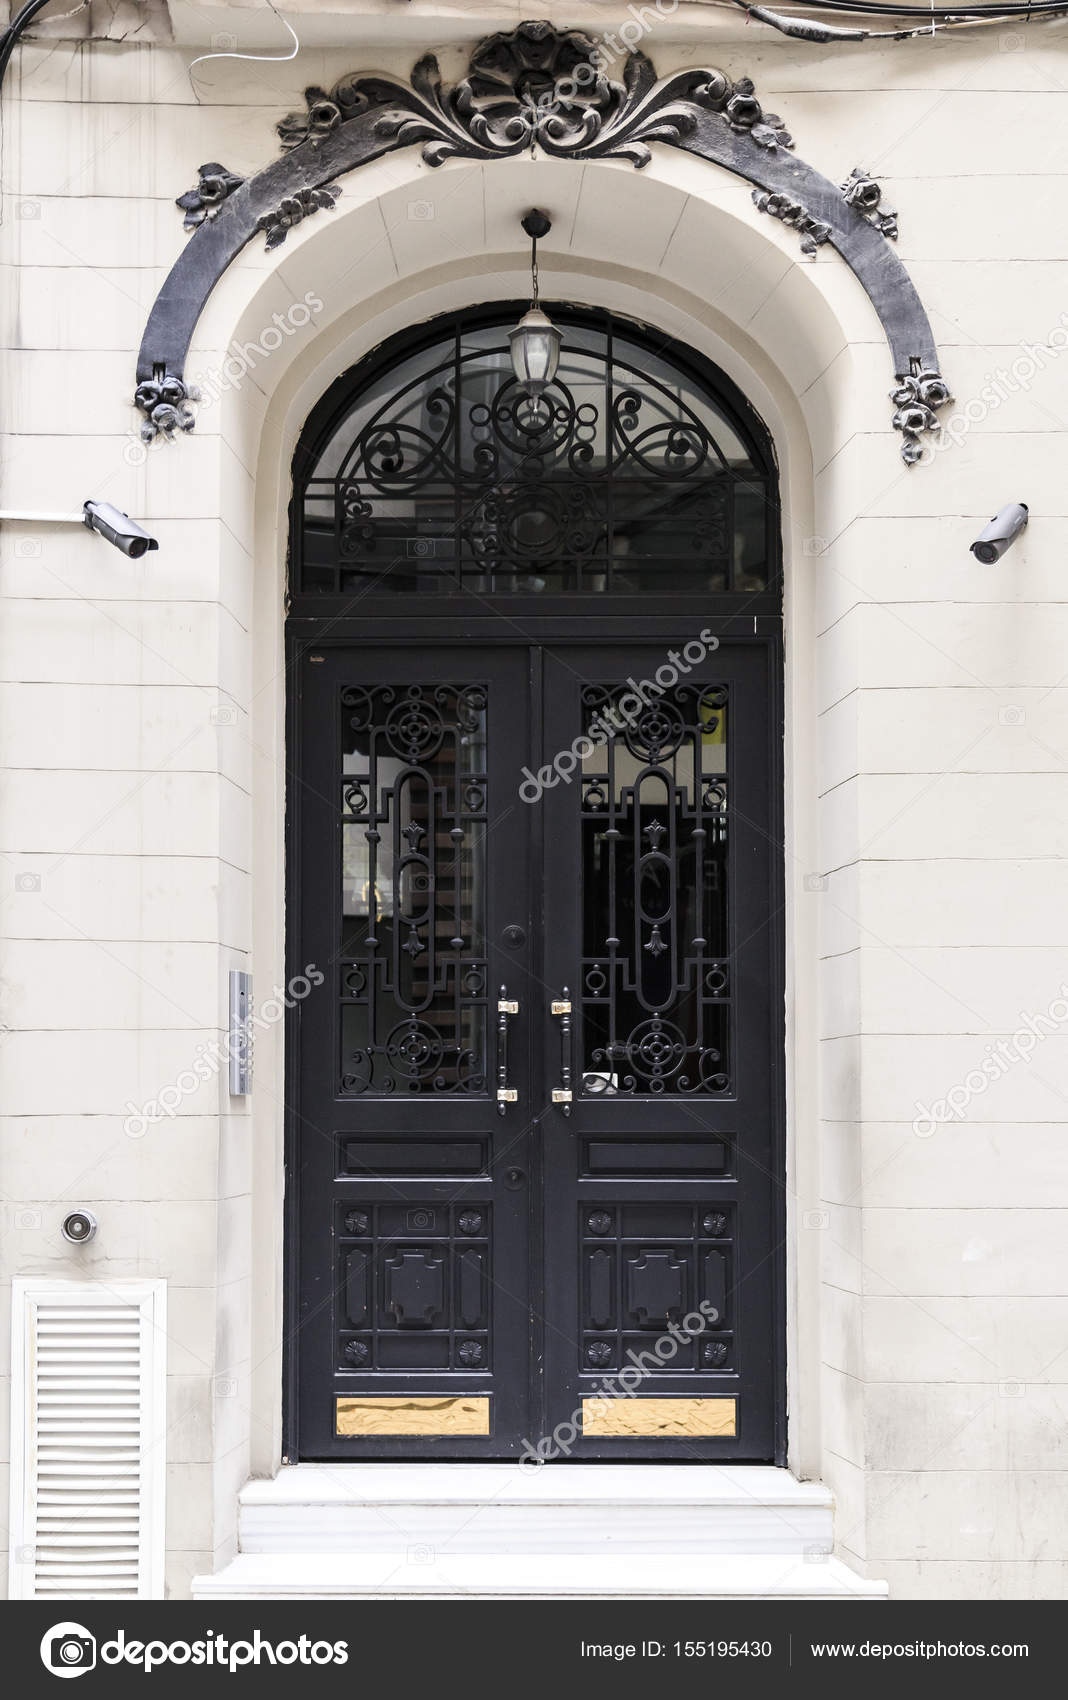 Architectural detail old ornate door of and aged building in Istanbul u2014 Photo by EnginKorkmaz & Architectural detail old ornate door u2014 Stock Photo © EnginKorkmaz ...